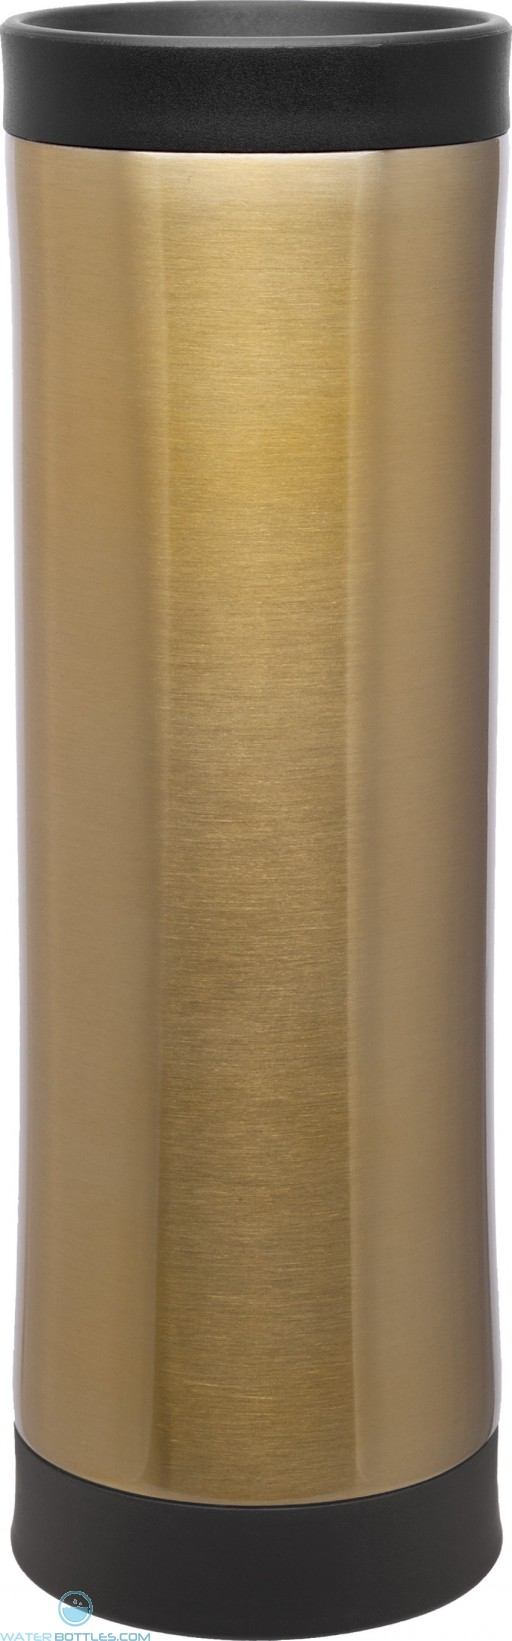 Americano Double Wall Thermal Tumblers | 16 oz - Gold